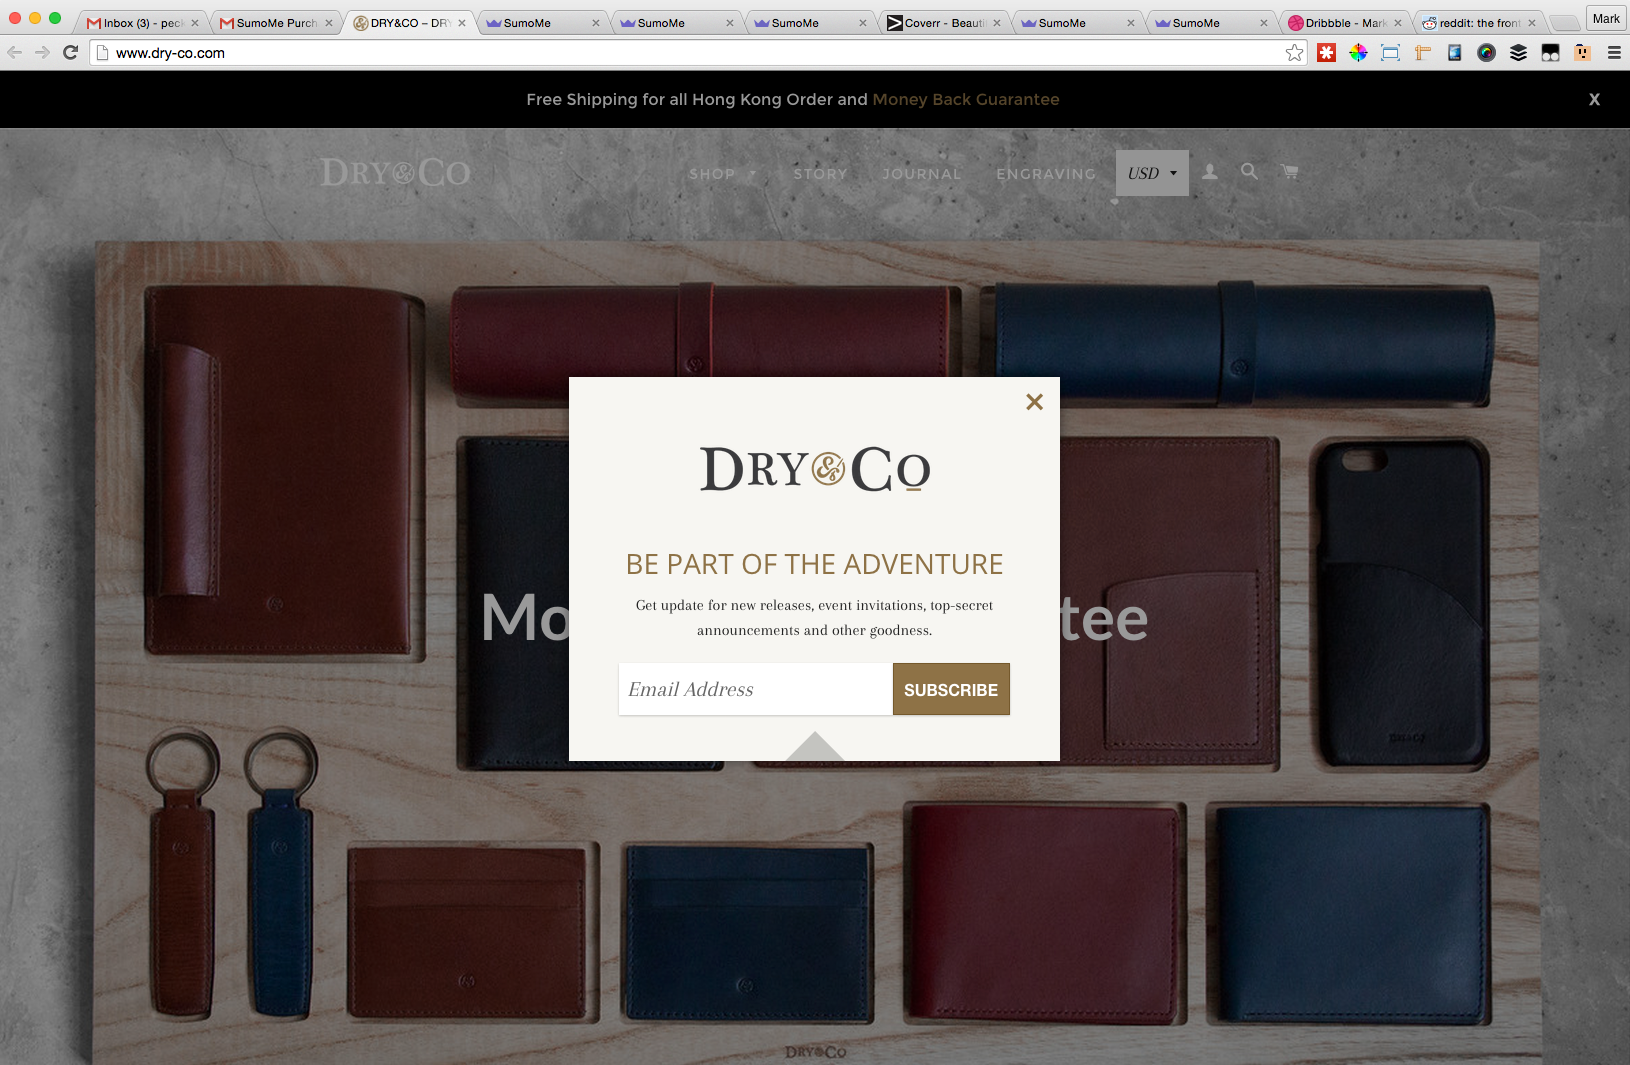 Screenshot showing a newsletter subscription box on dry-co